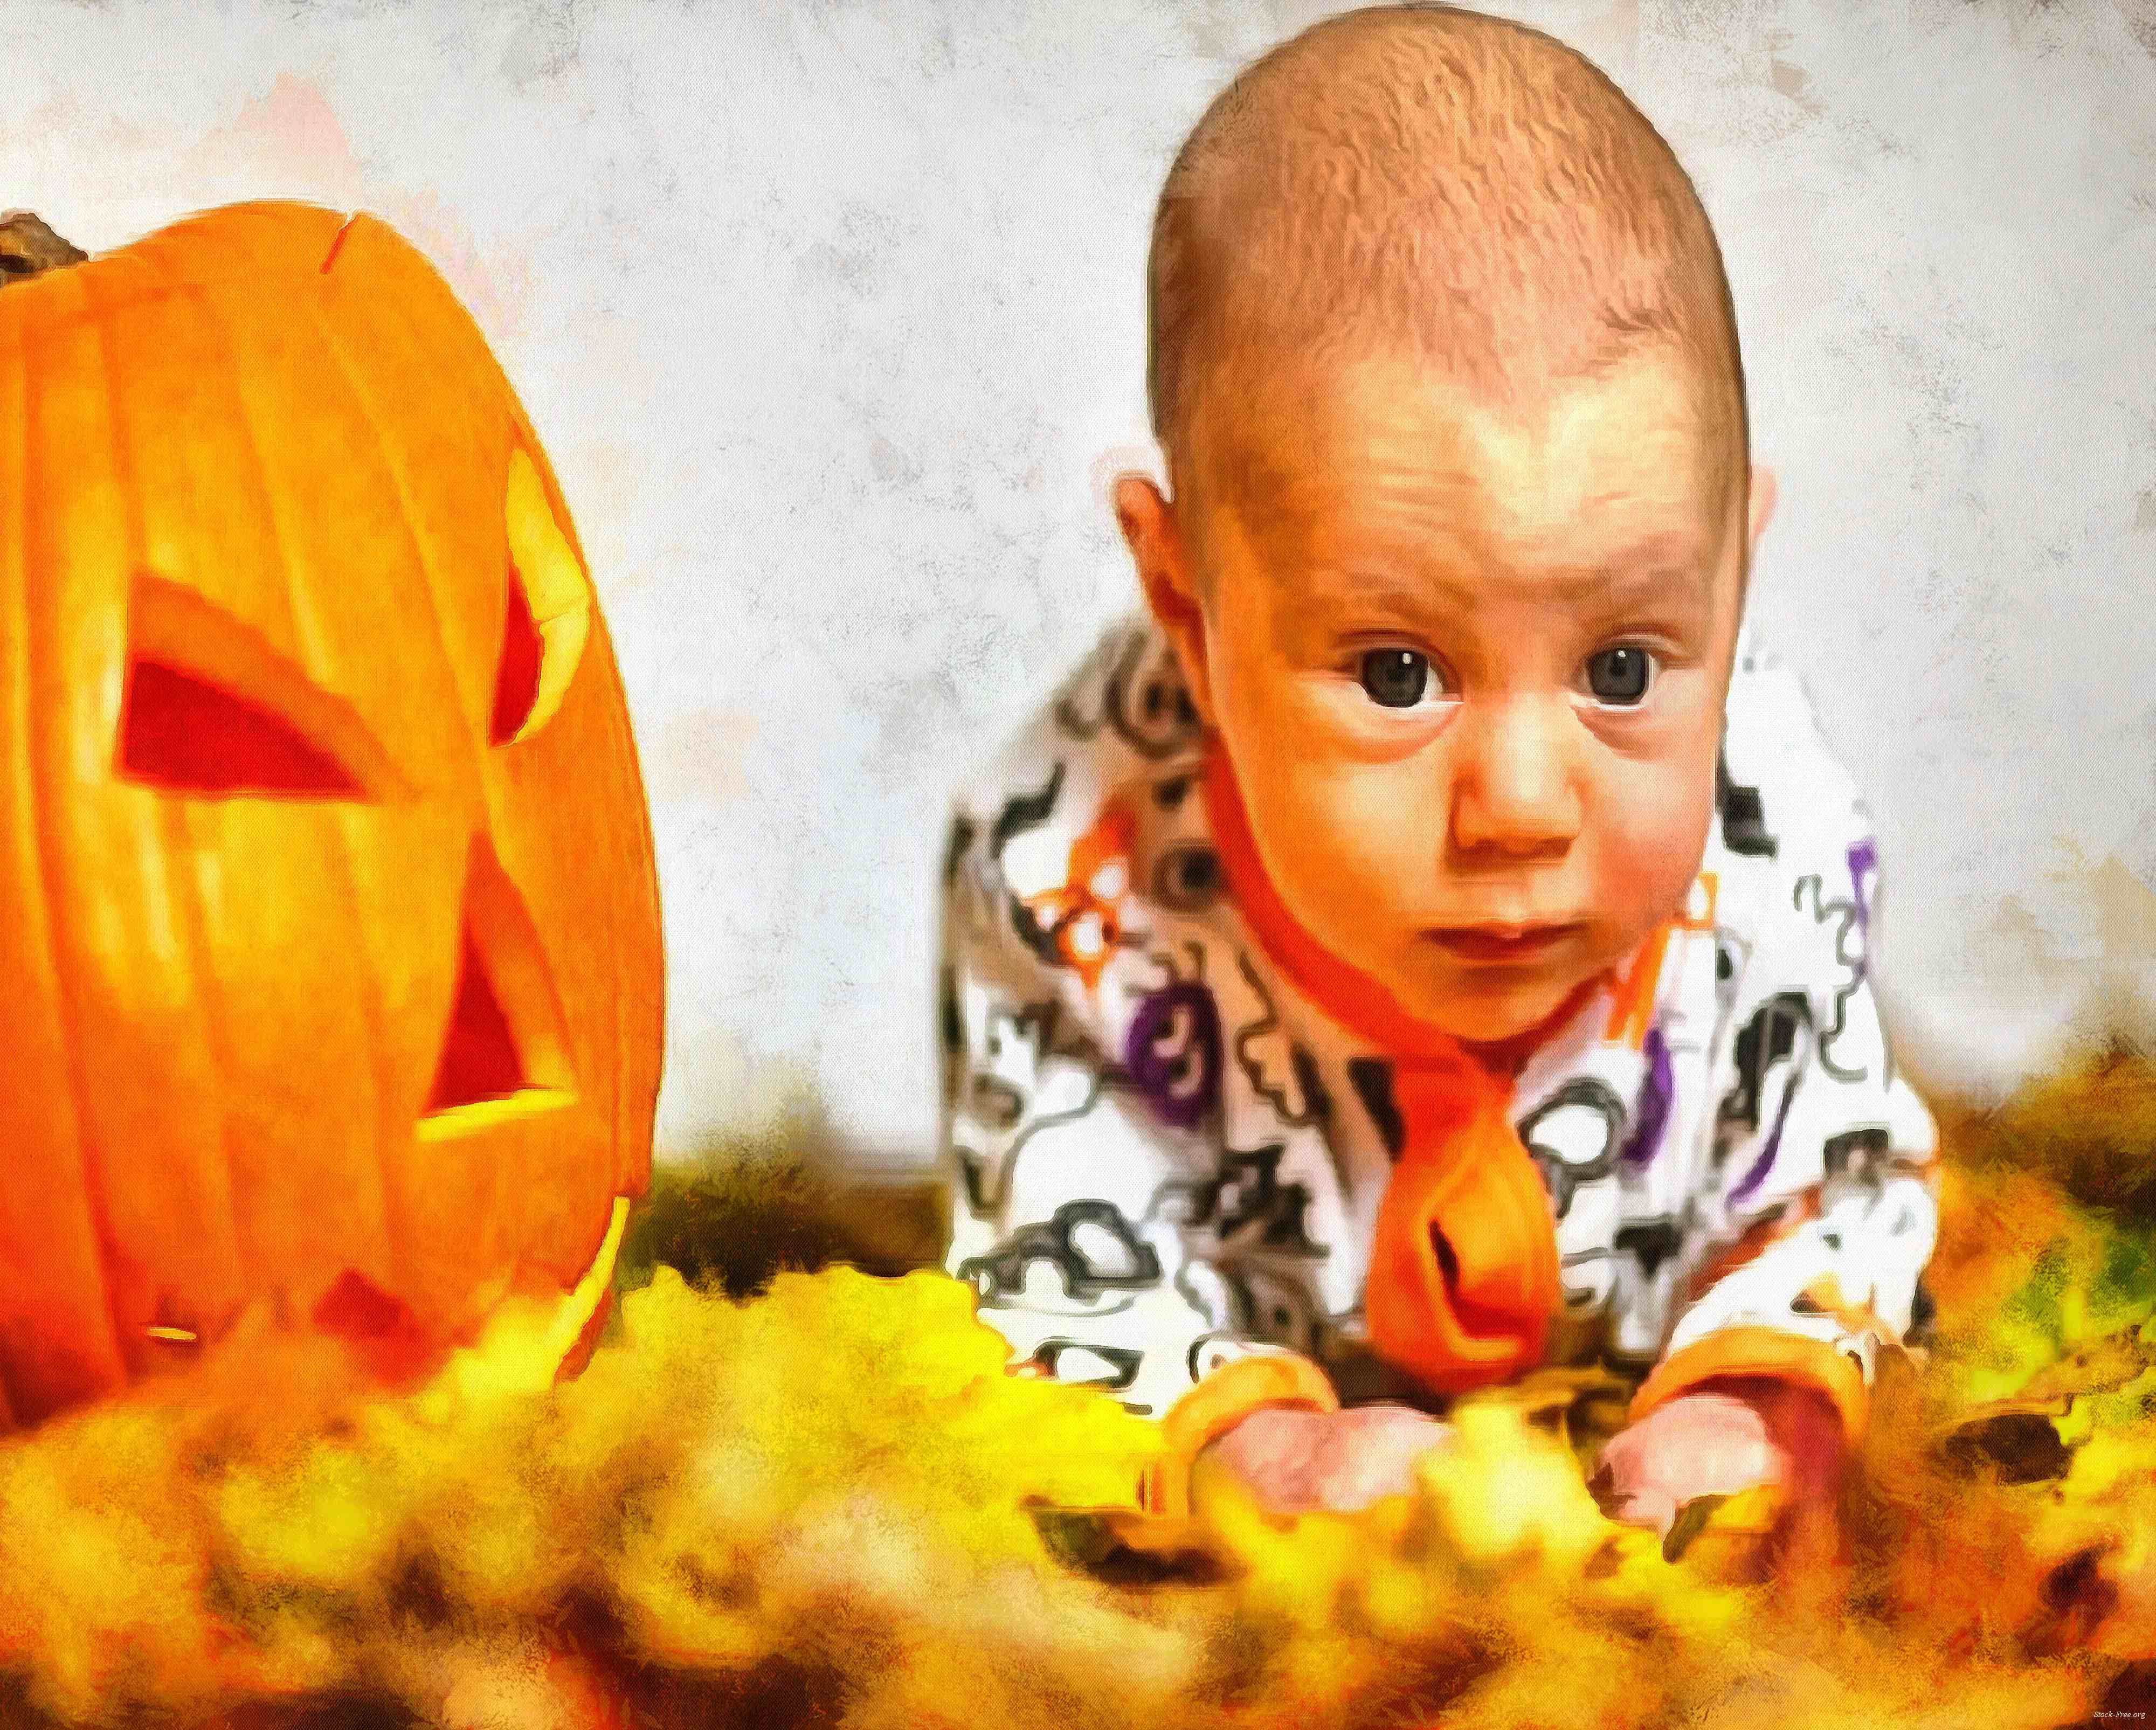 child, baby, toddler, pumpkin, halloween - halloween free image, free images, public domain images, stock free images, download image for free, halloween stock free images!